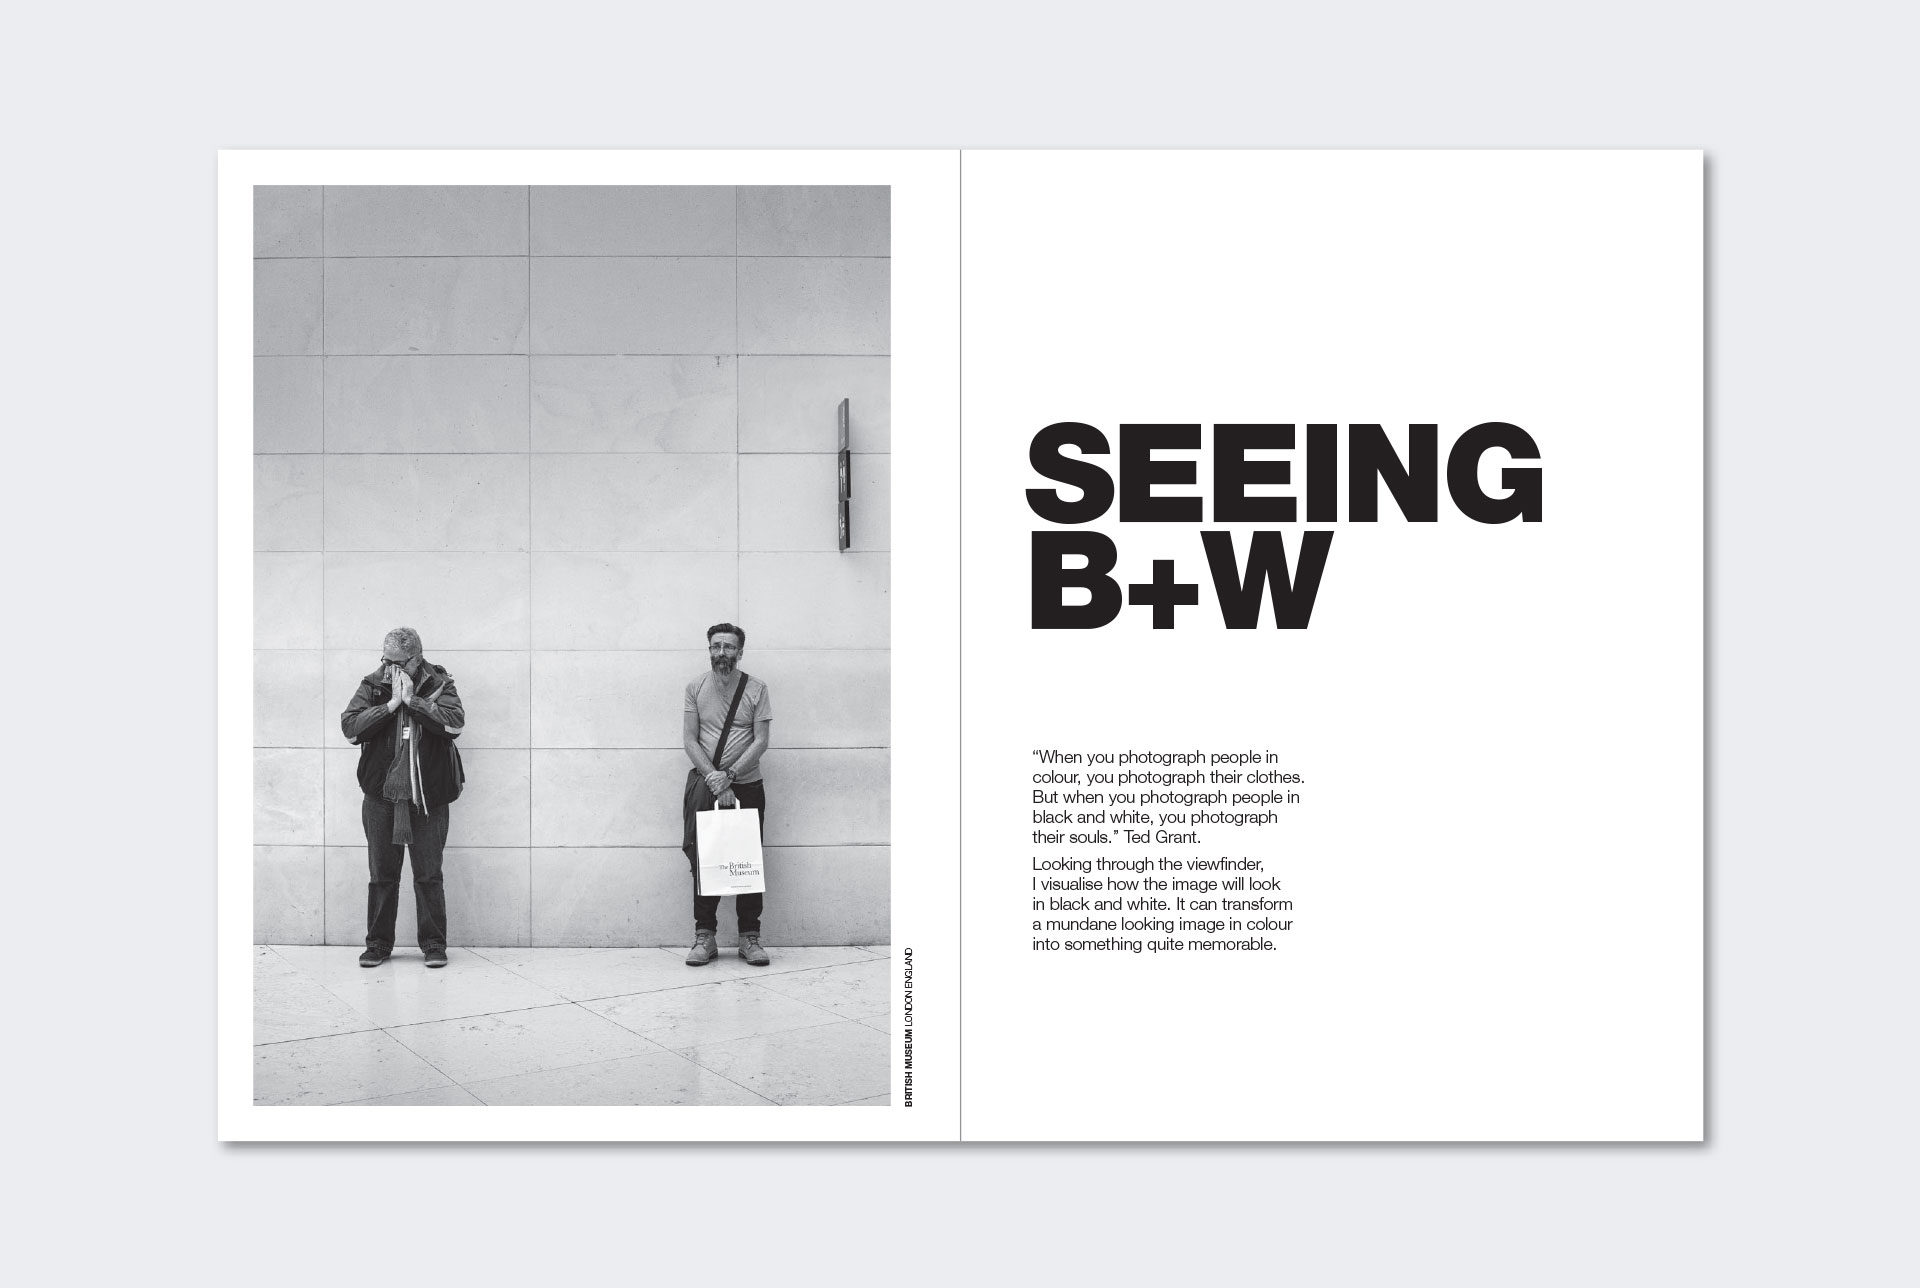 its-not-what-you-see-photography-magazine-seeing-bw-pages.jpg